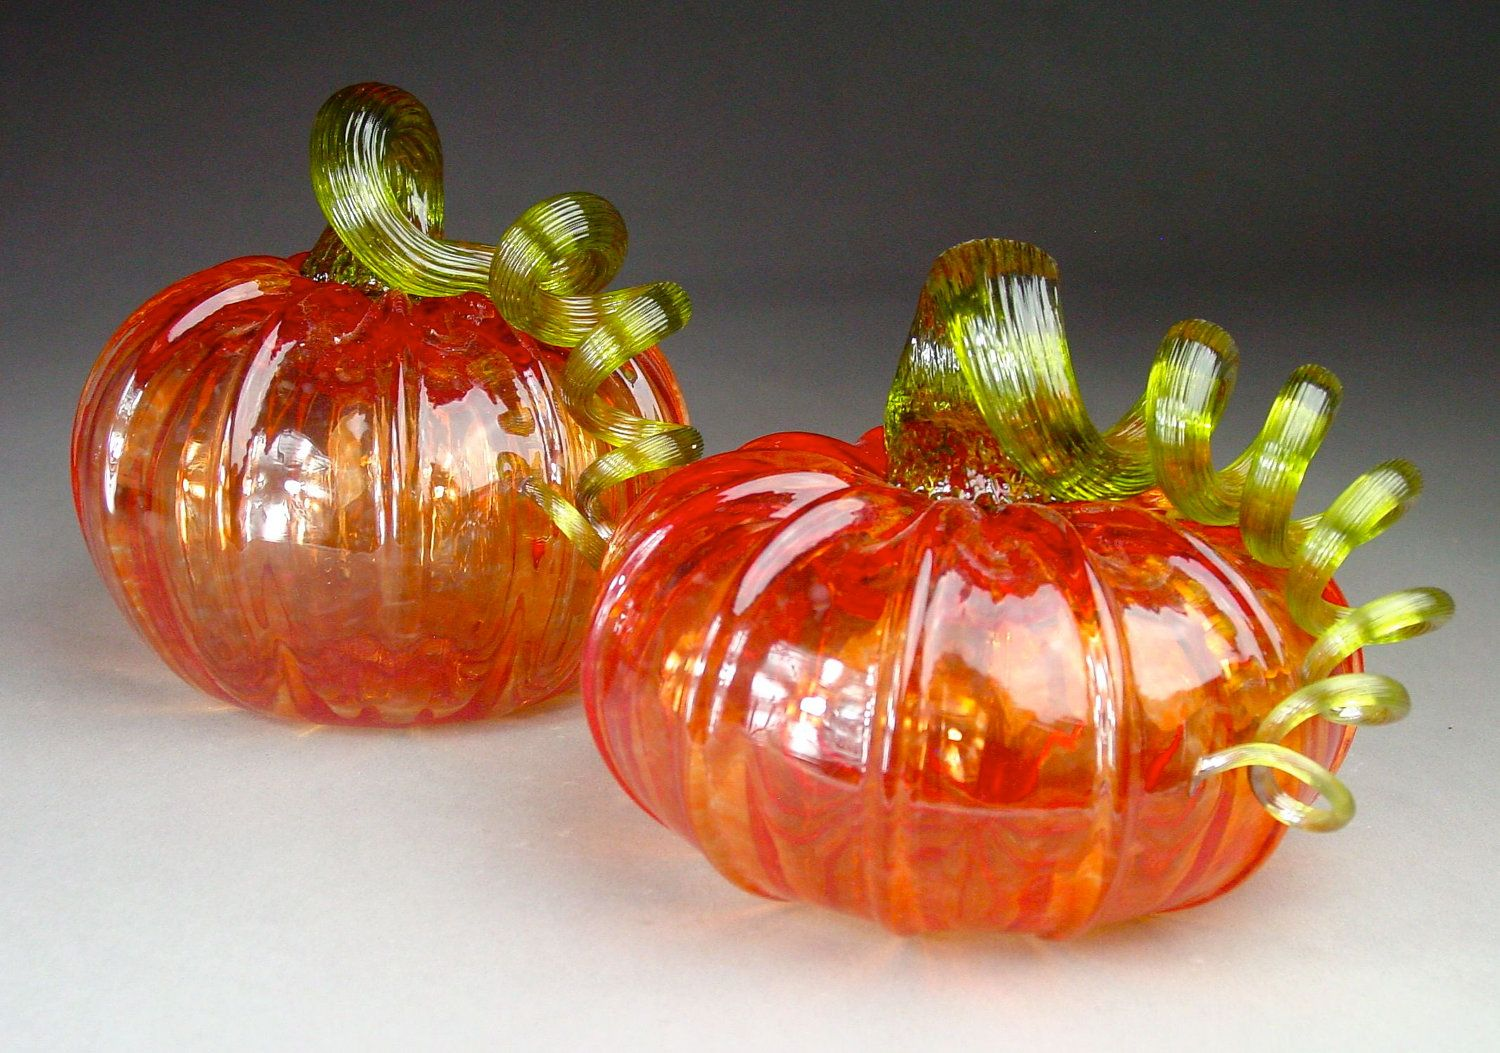 Hand blown glass pumpkins so delicate with images